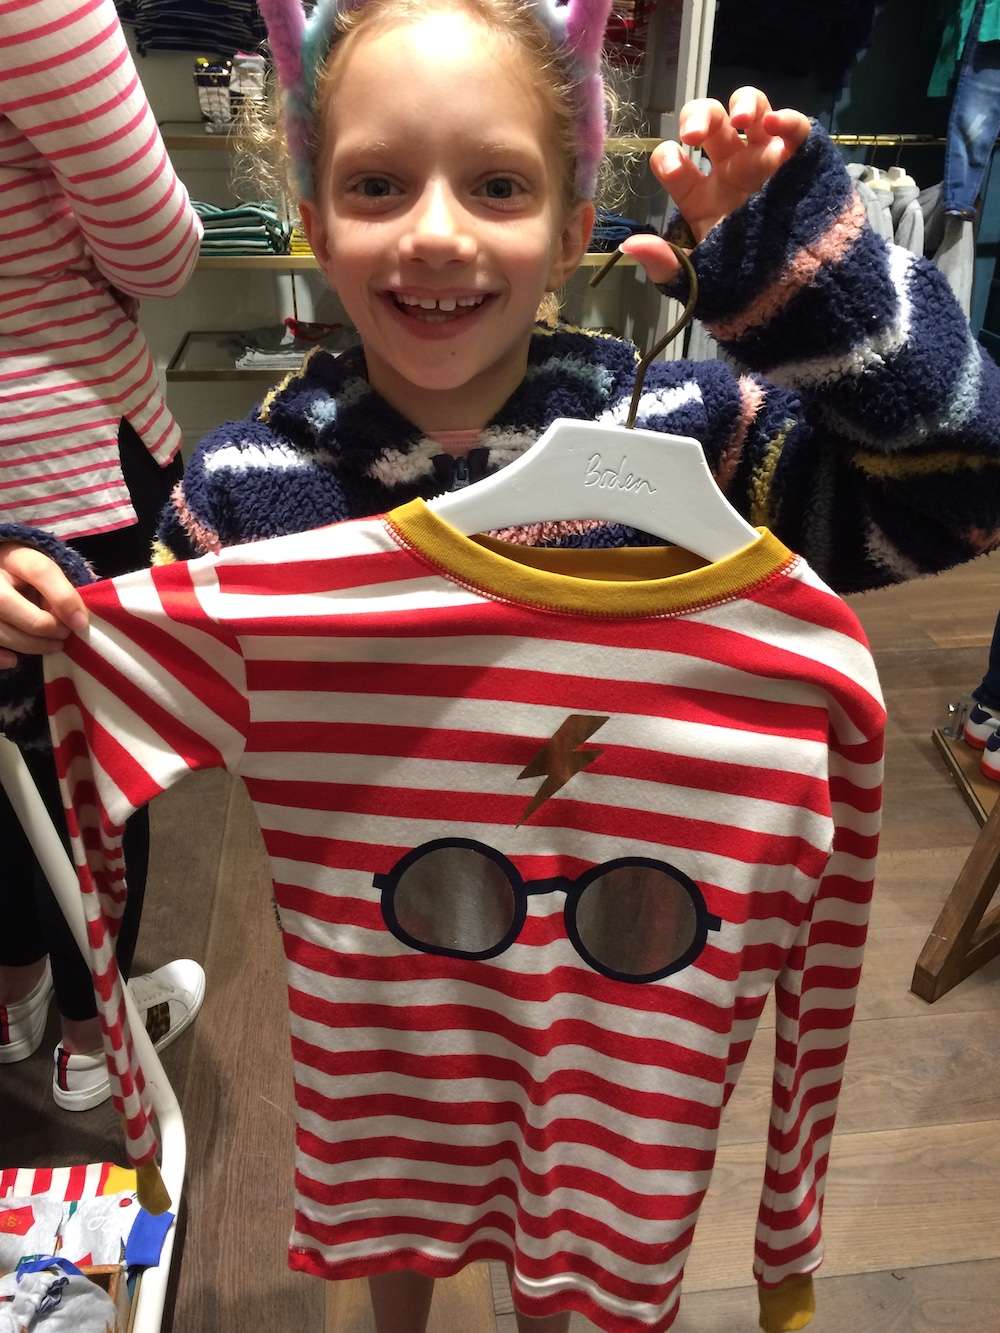 A simple glasses and scar design is featured on these pajamas, which cost £26 and are available in sizes 3 to 14 years.